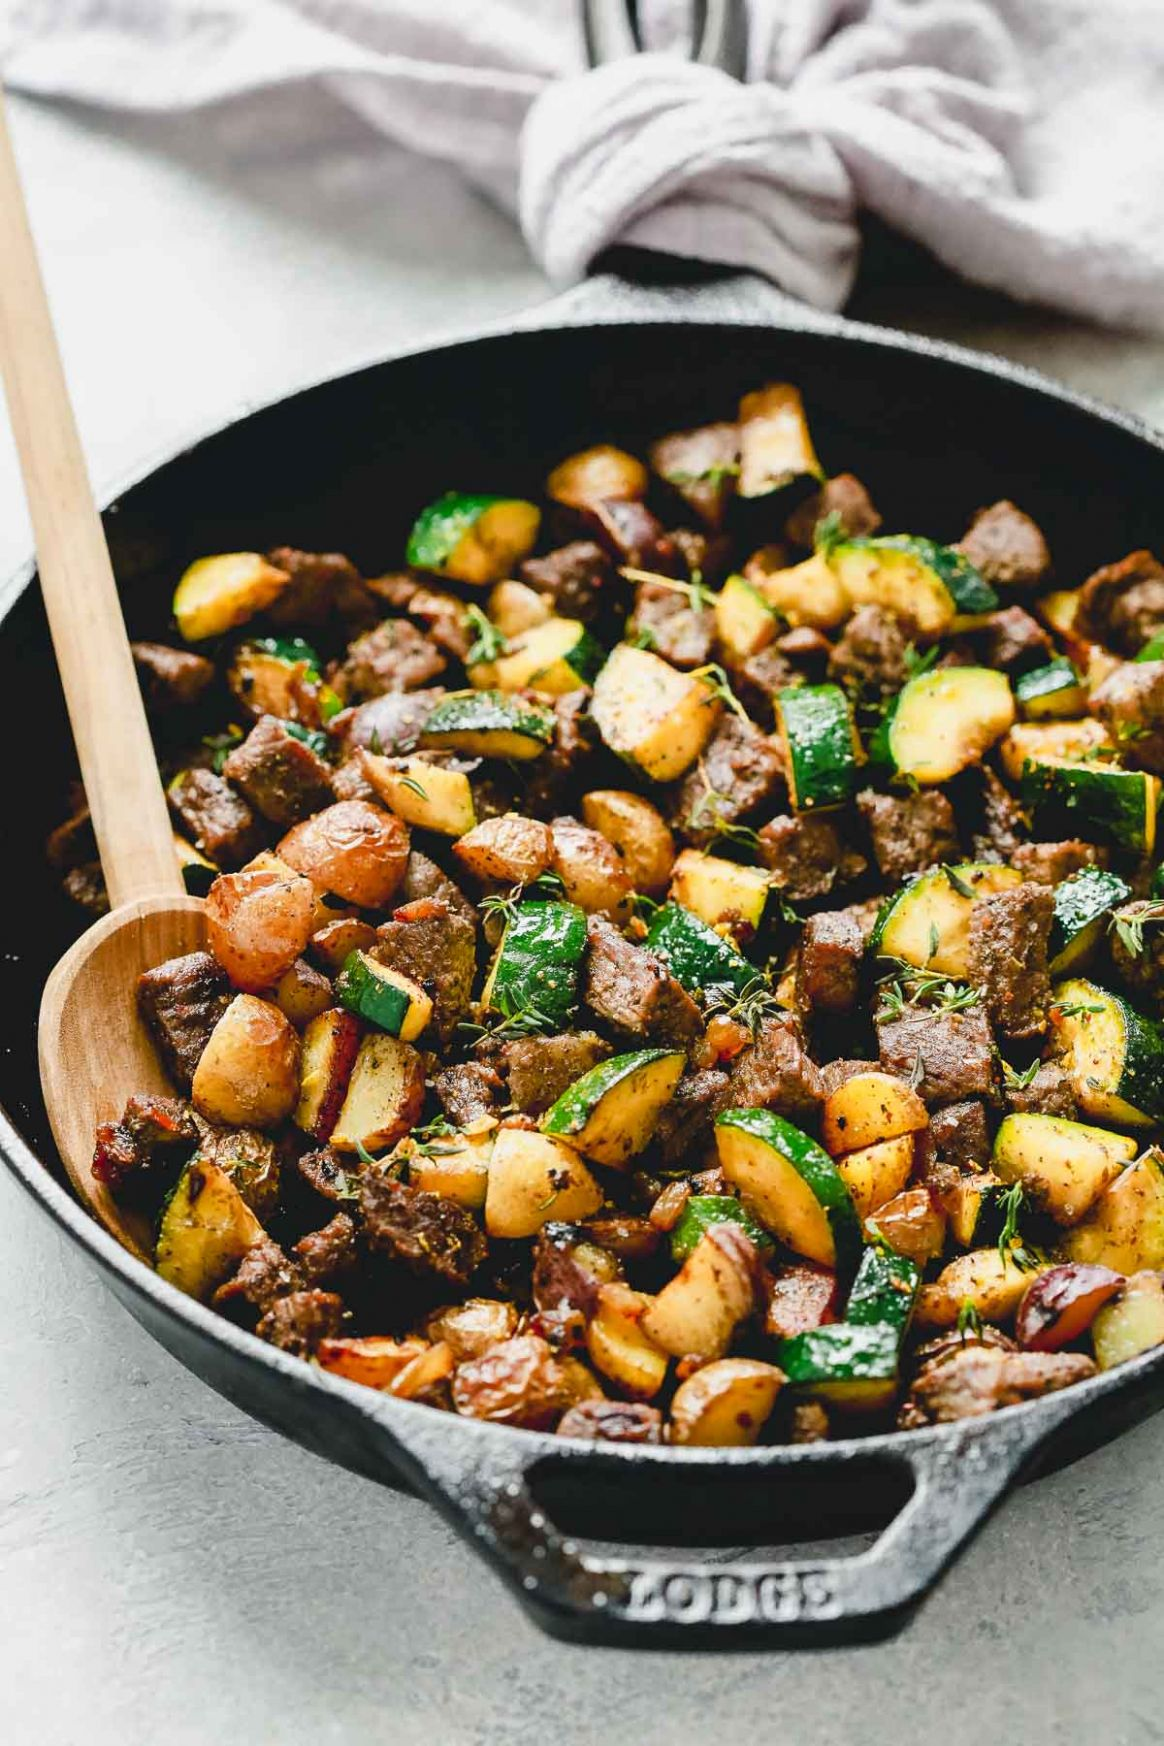 Quick Beef and Zucchini Skillet (Meal-Prep) - Recipes With Beef And Zucchini